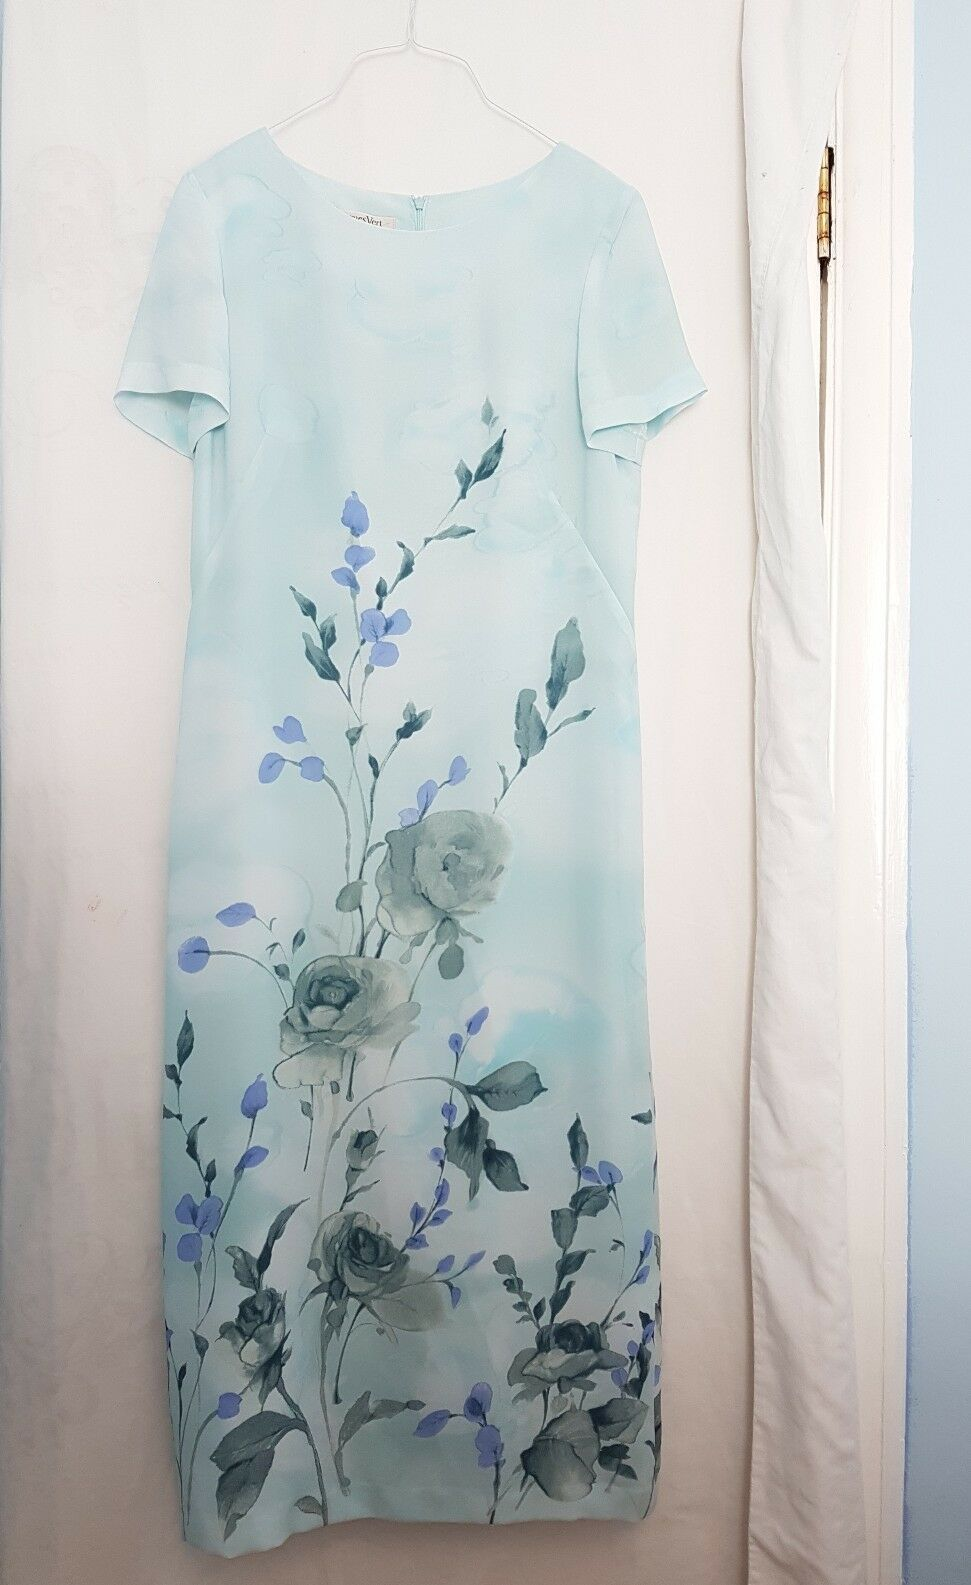 Jacques green bluee floral print dress set wedding mother of the bride size10 BK9